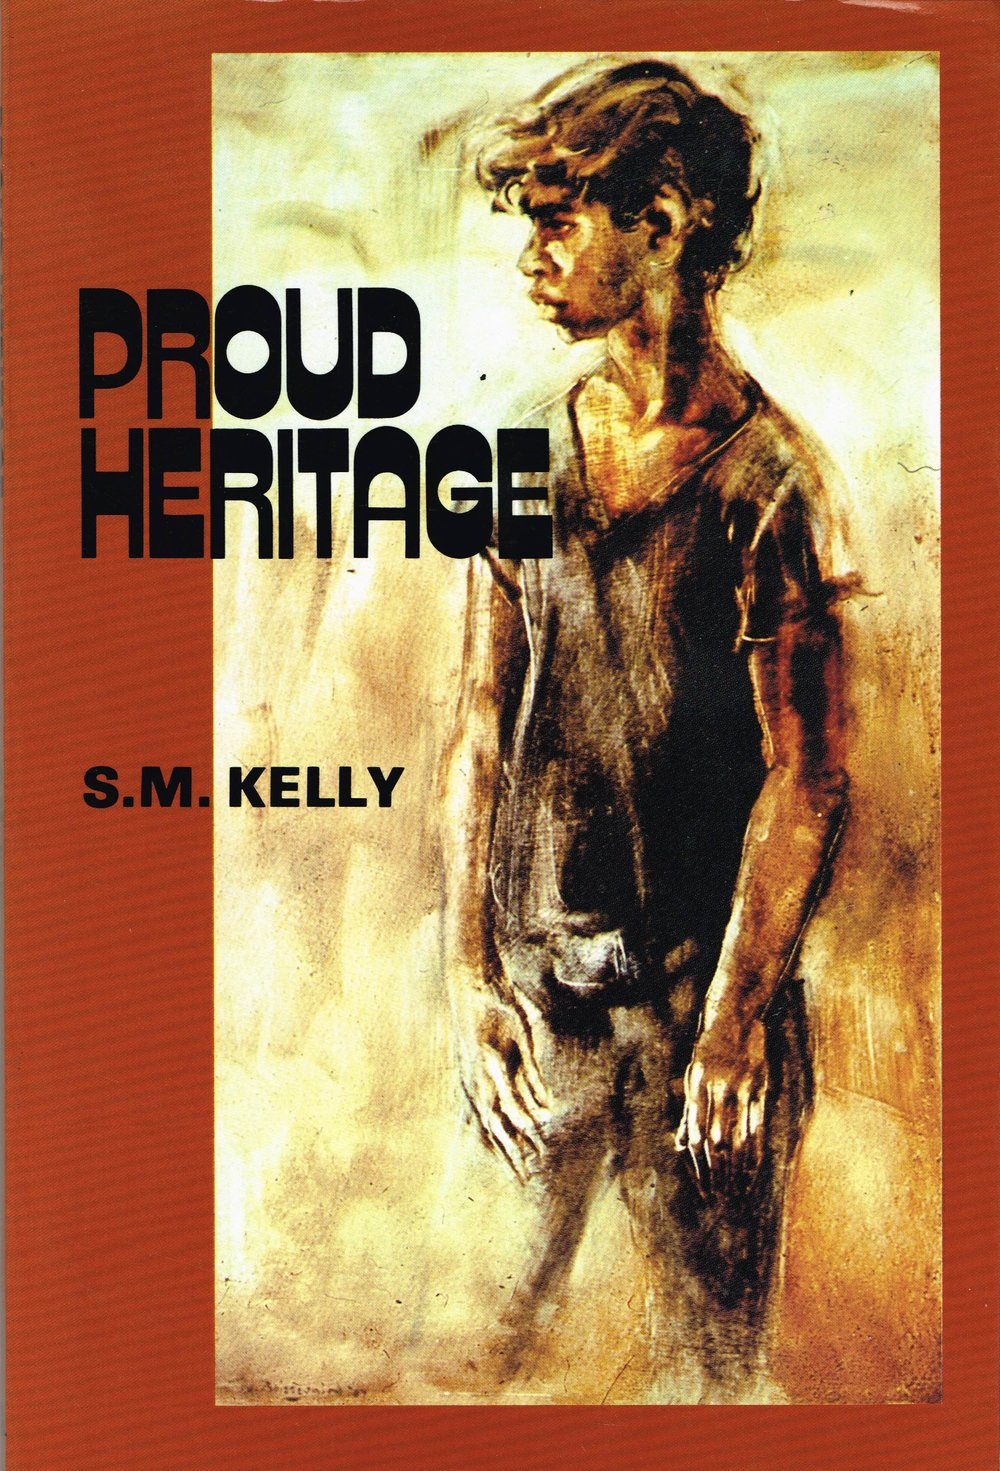 Proud Heritage   S.M. Kelly